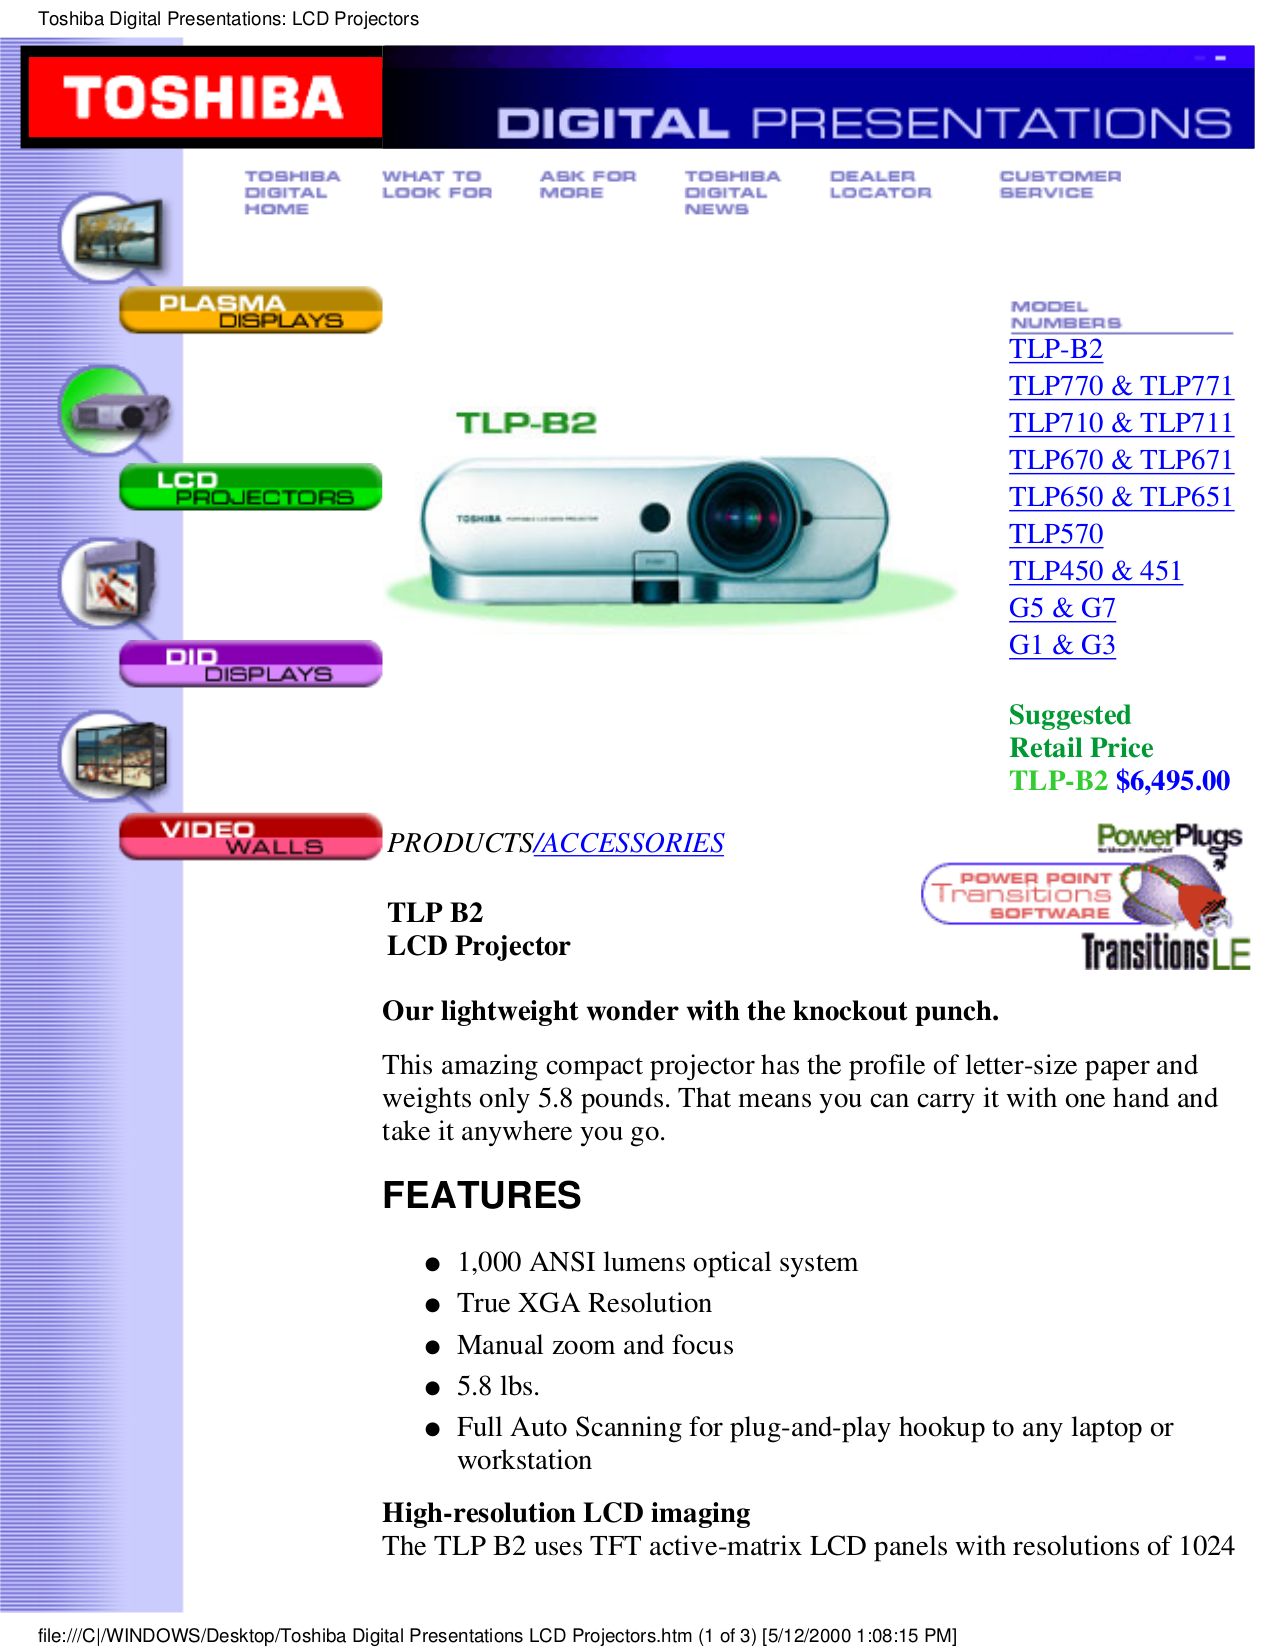 Toshiba G3 Manual G7 Asd Wiring Diagram 1 Of 7only 3 Available Array Download Free Pdf For Tlp 770 Projector Rh Umlib Com